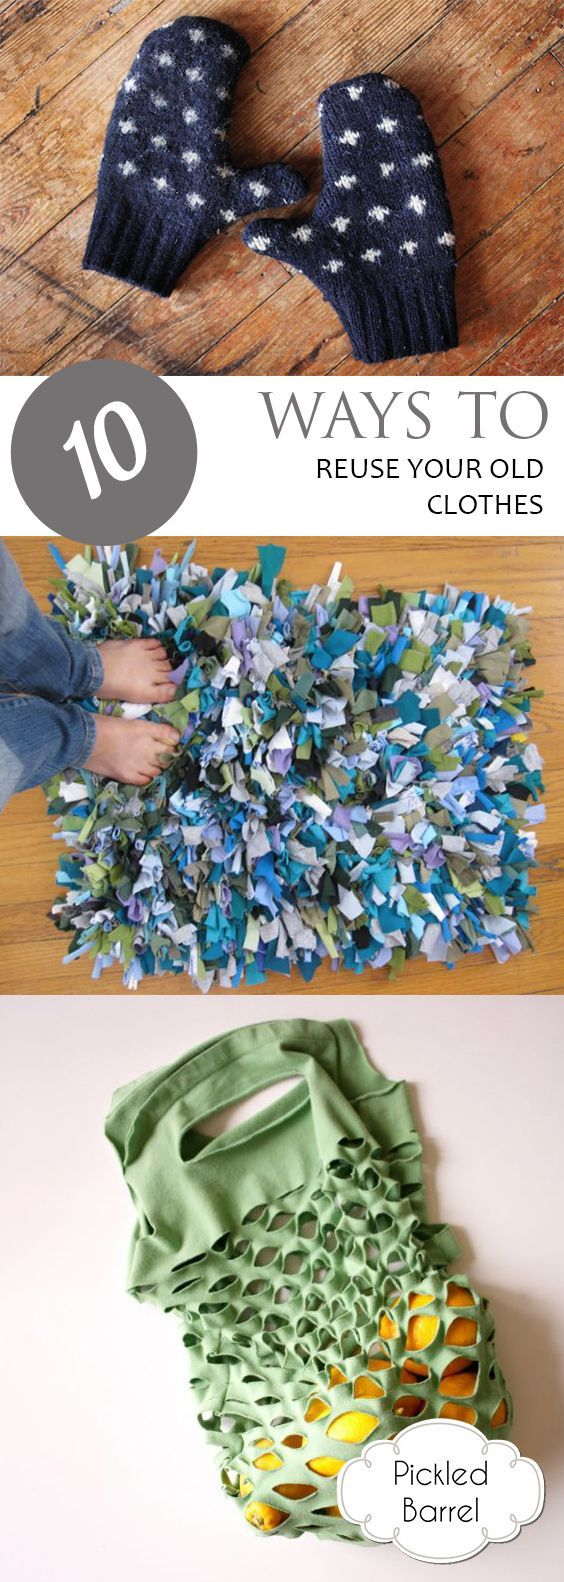 10 Ways To Reuse Your Old Clothes Handmade Craft Ideas Reuse Old